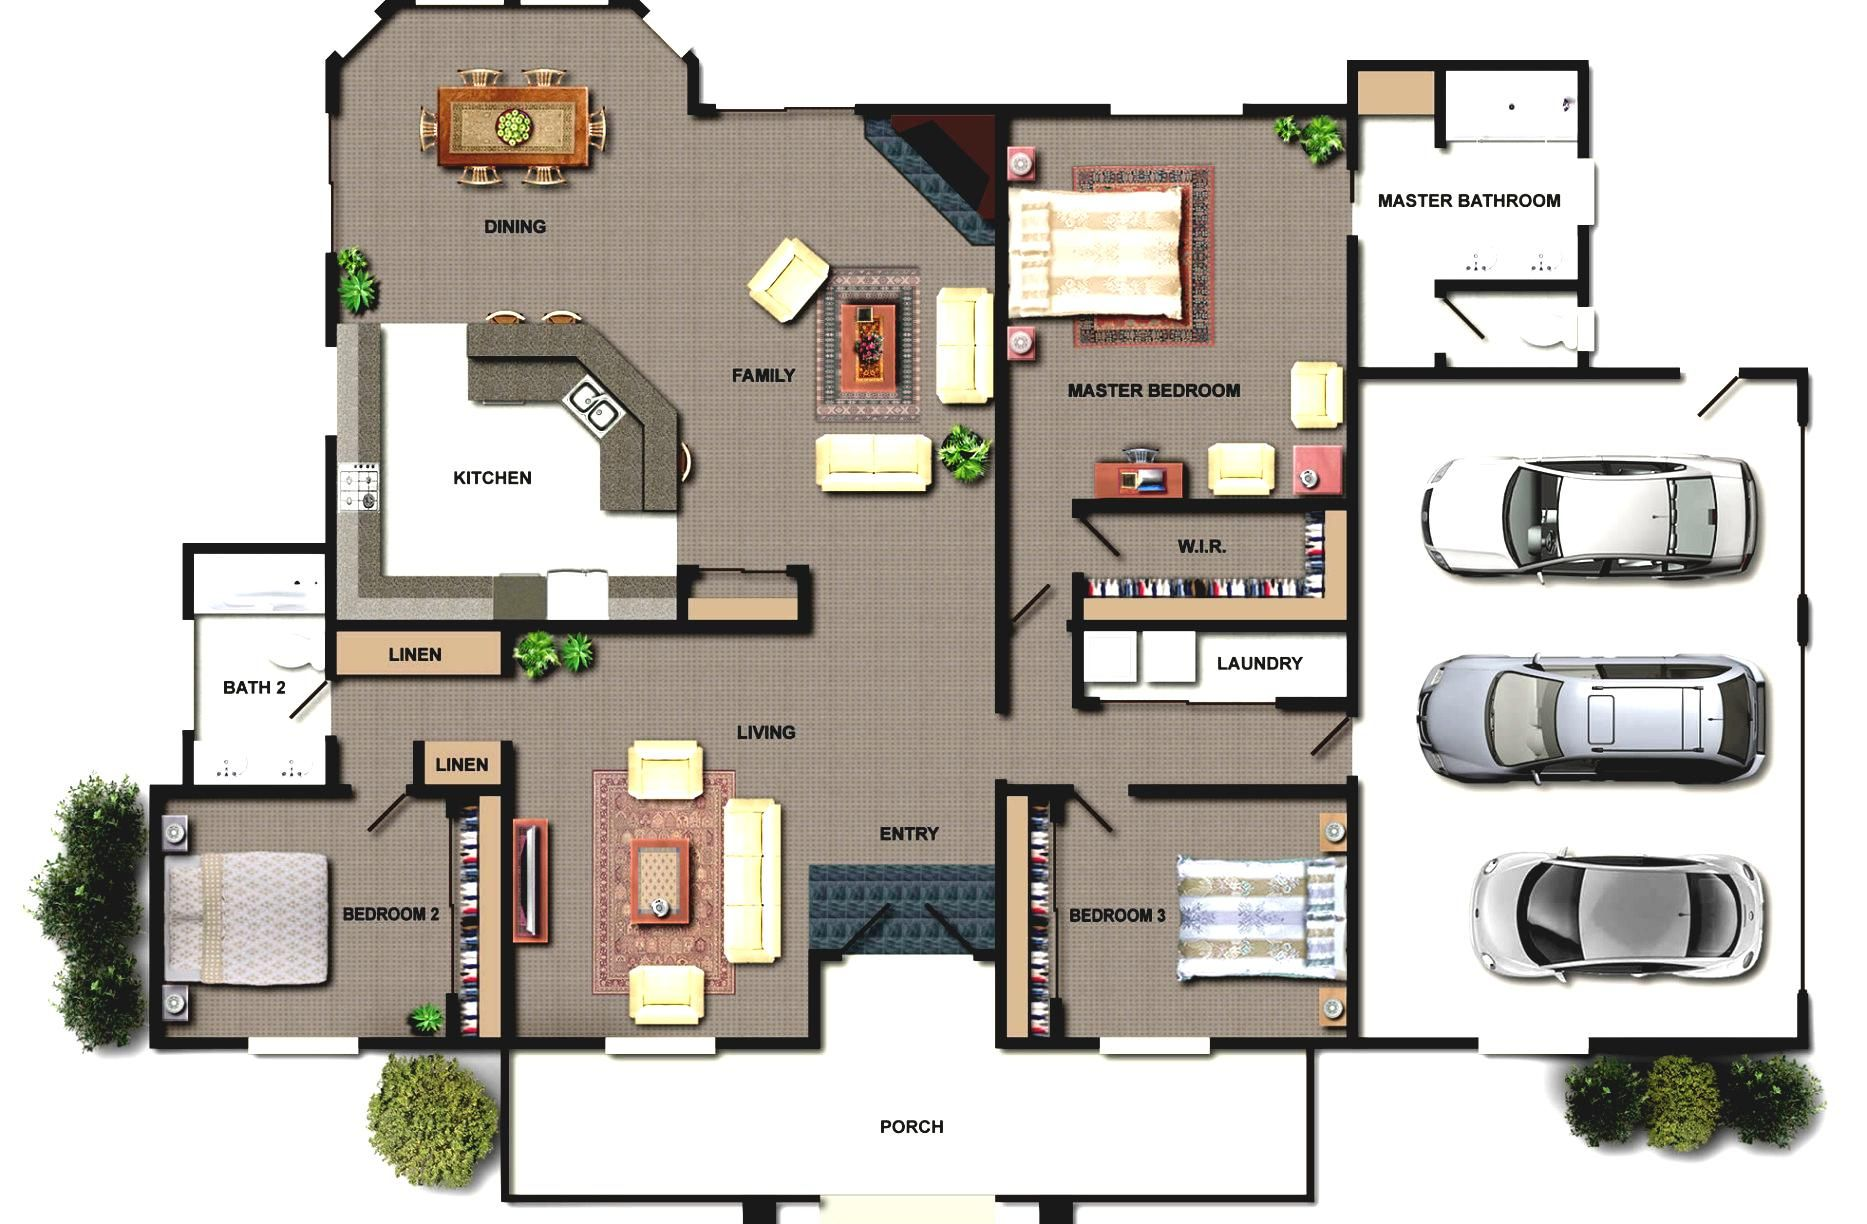 Modern home building designs creating stylish and design layout